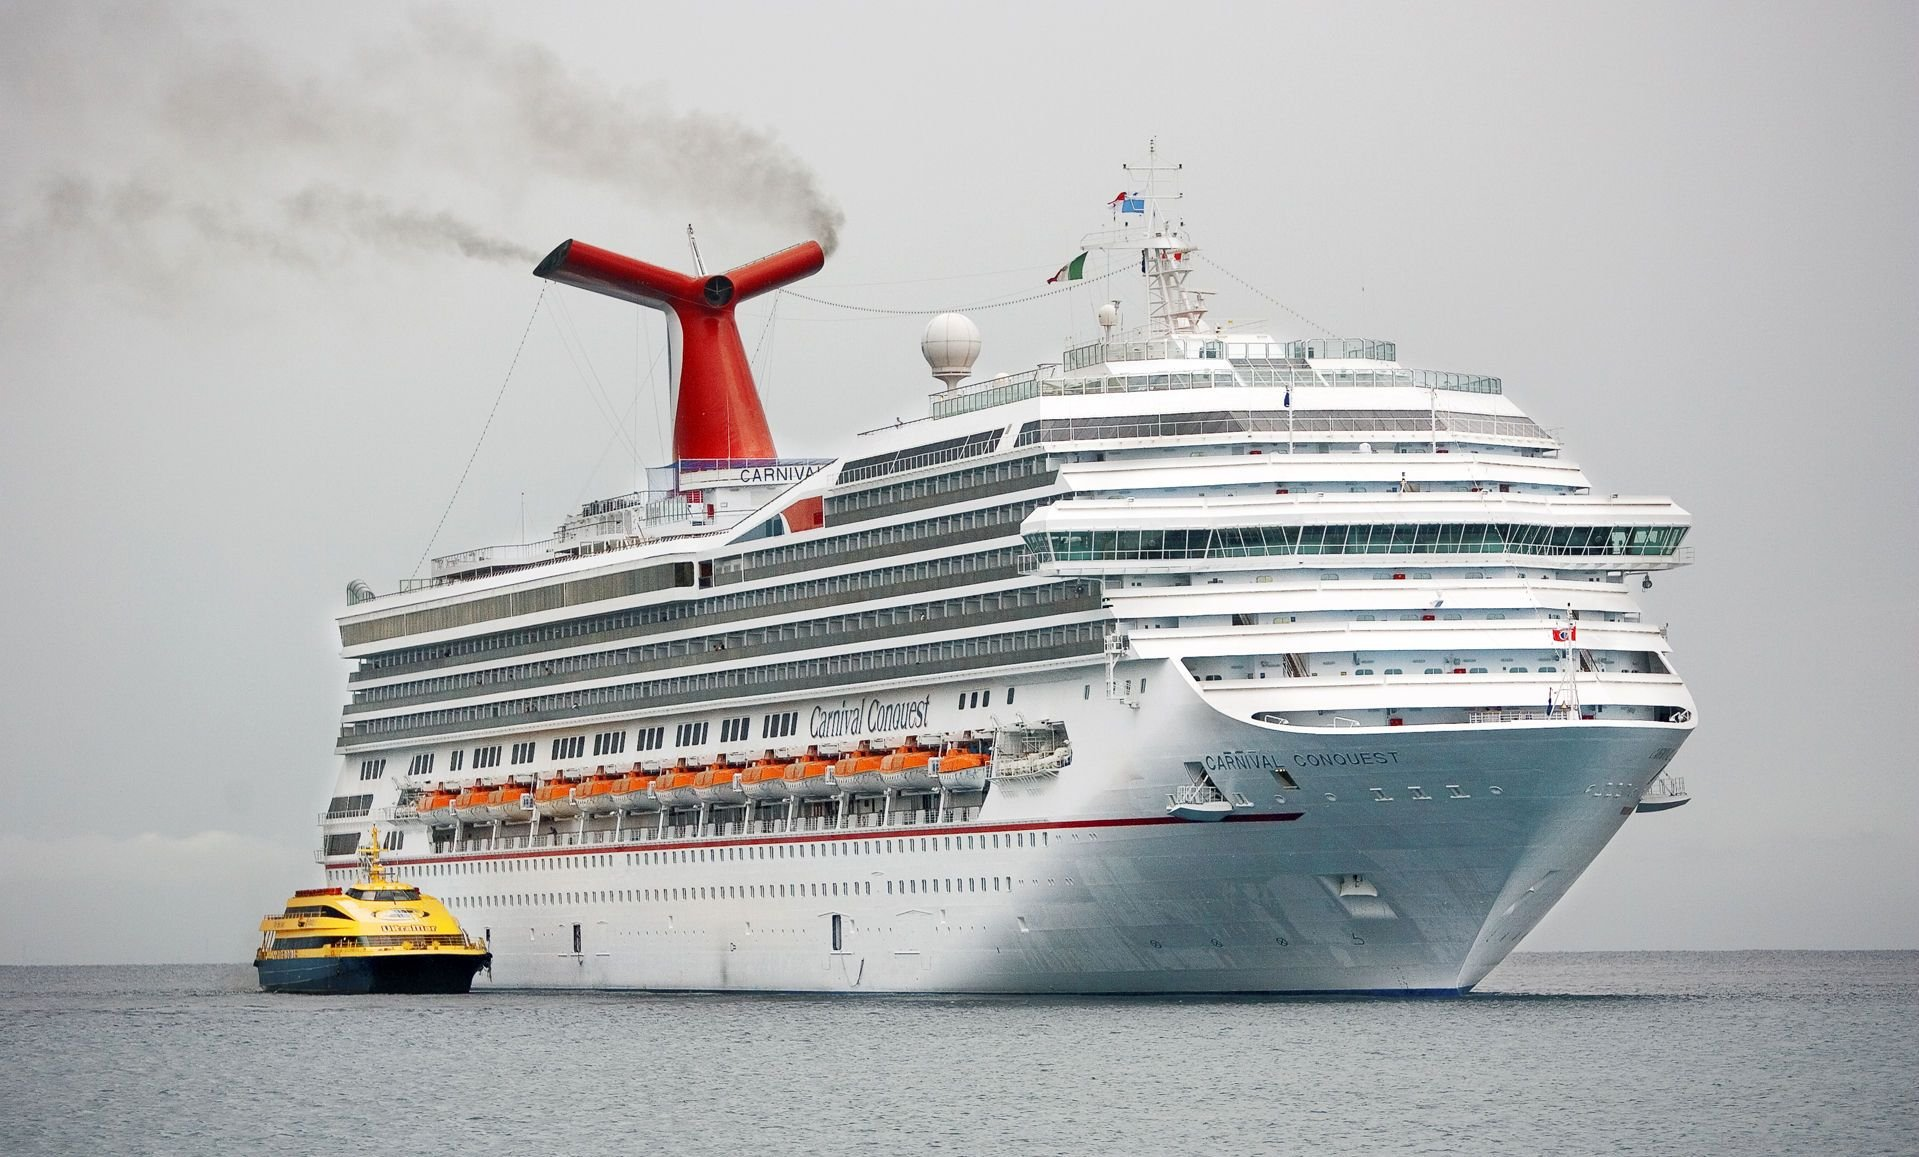 Carnival Conquest Cruise Ship Wallpaper  DesiCommentscom